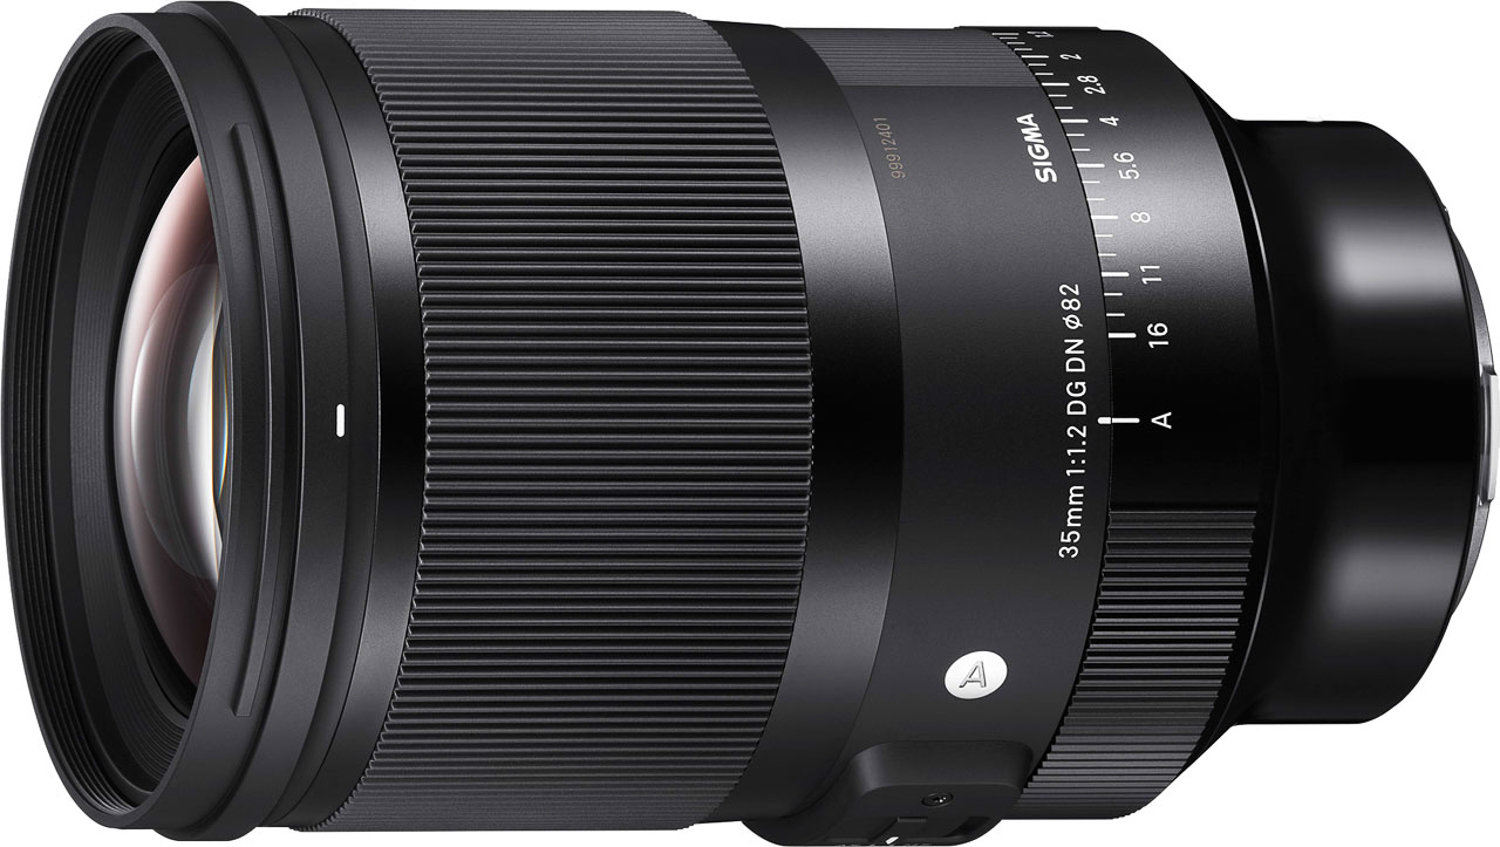 https://i0.wp.com/digital-photography-school.com/wp-content/uploads/2019/11/Sigma-35mm-f1.2-ART-lens-9.jpg?resize=1500%2C847&ssl=1